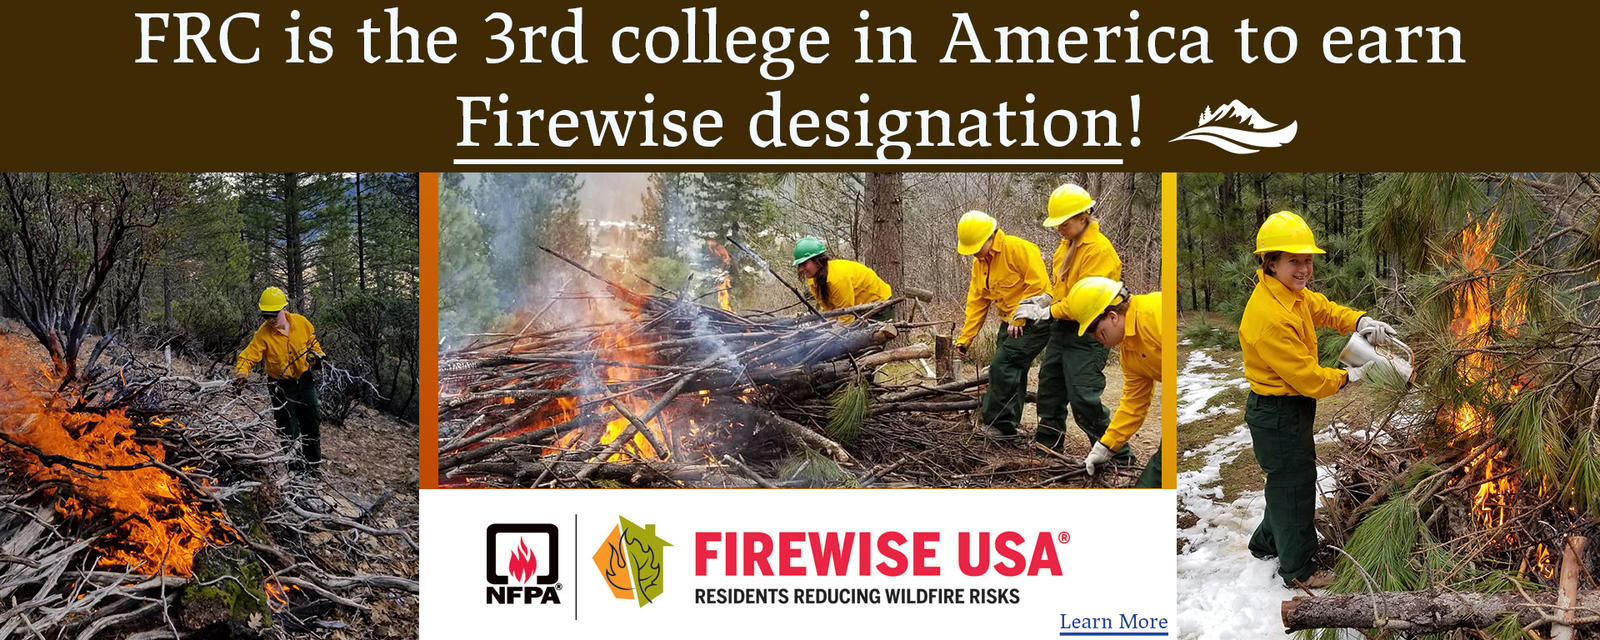 frc is the 3rd college in america to earn firewise designation.